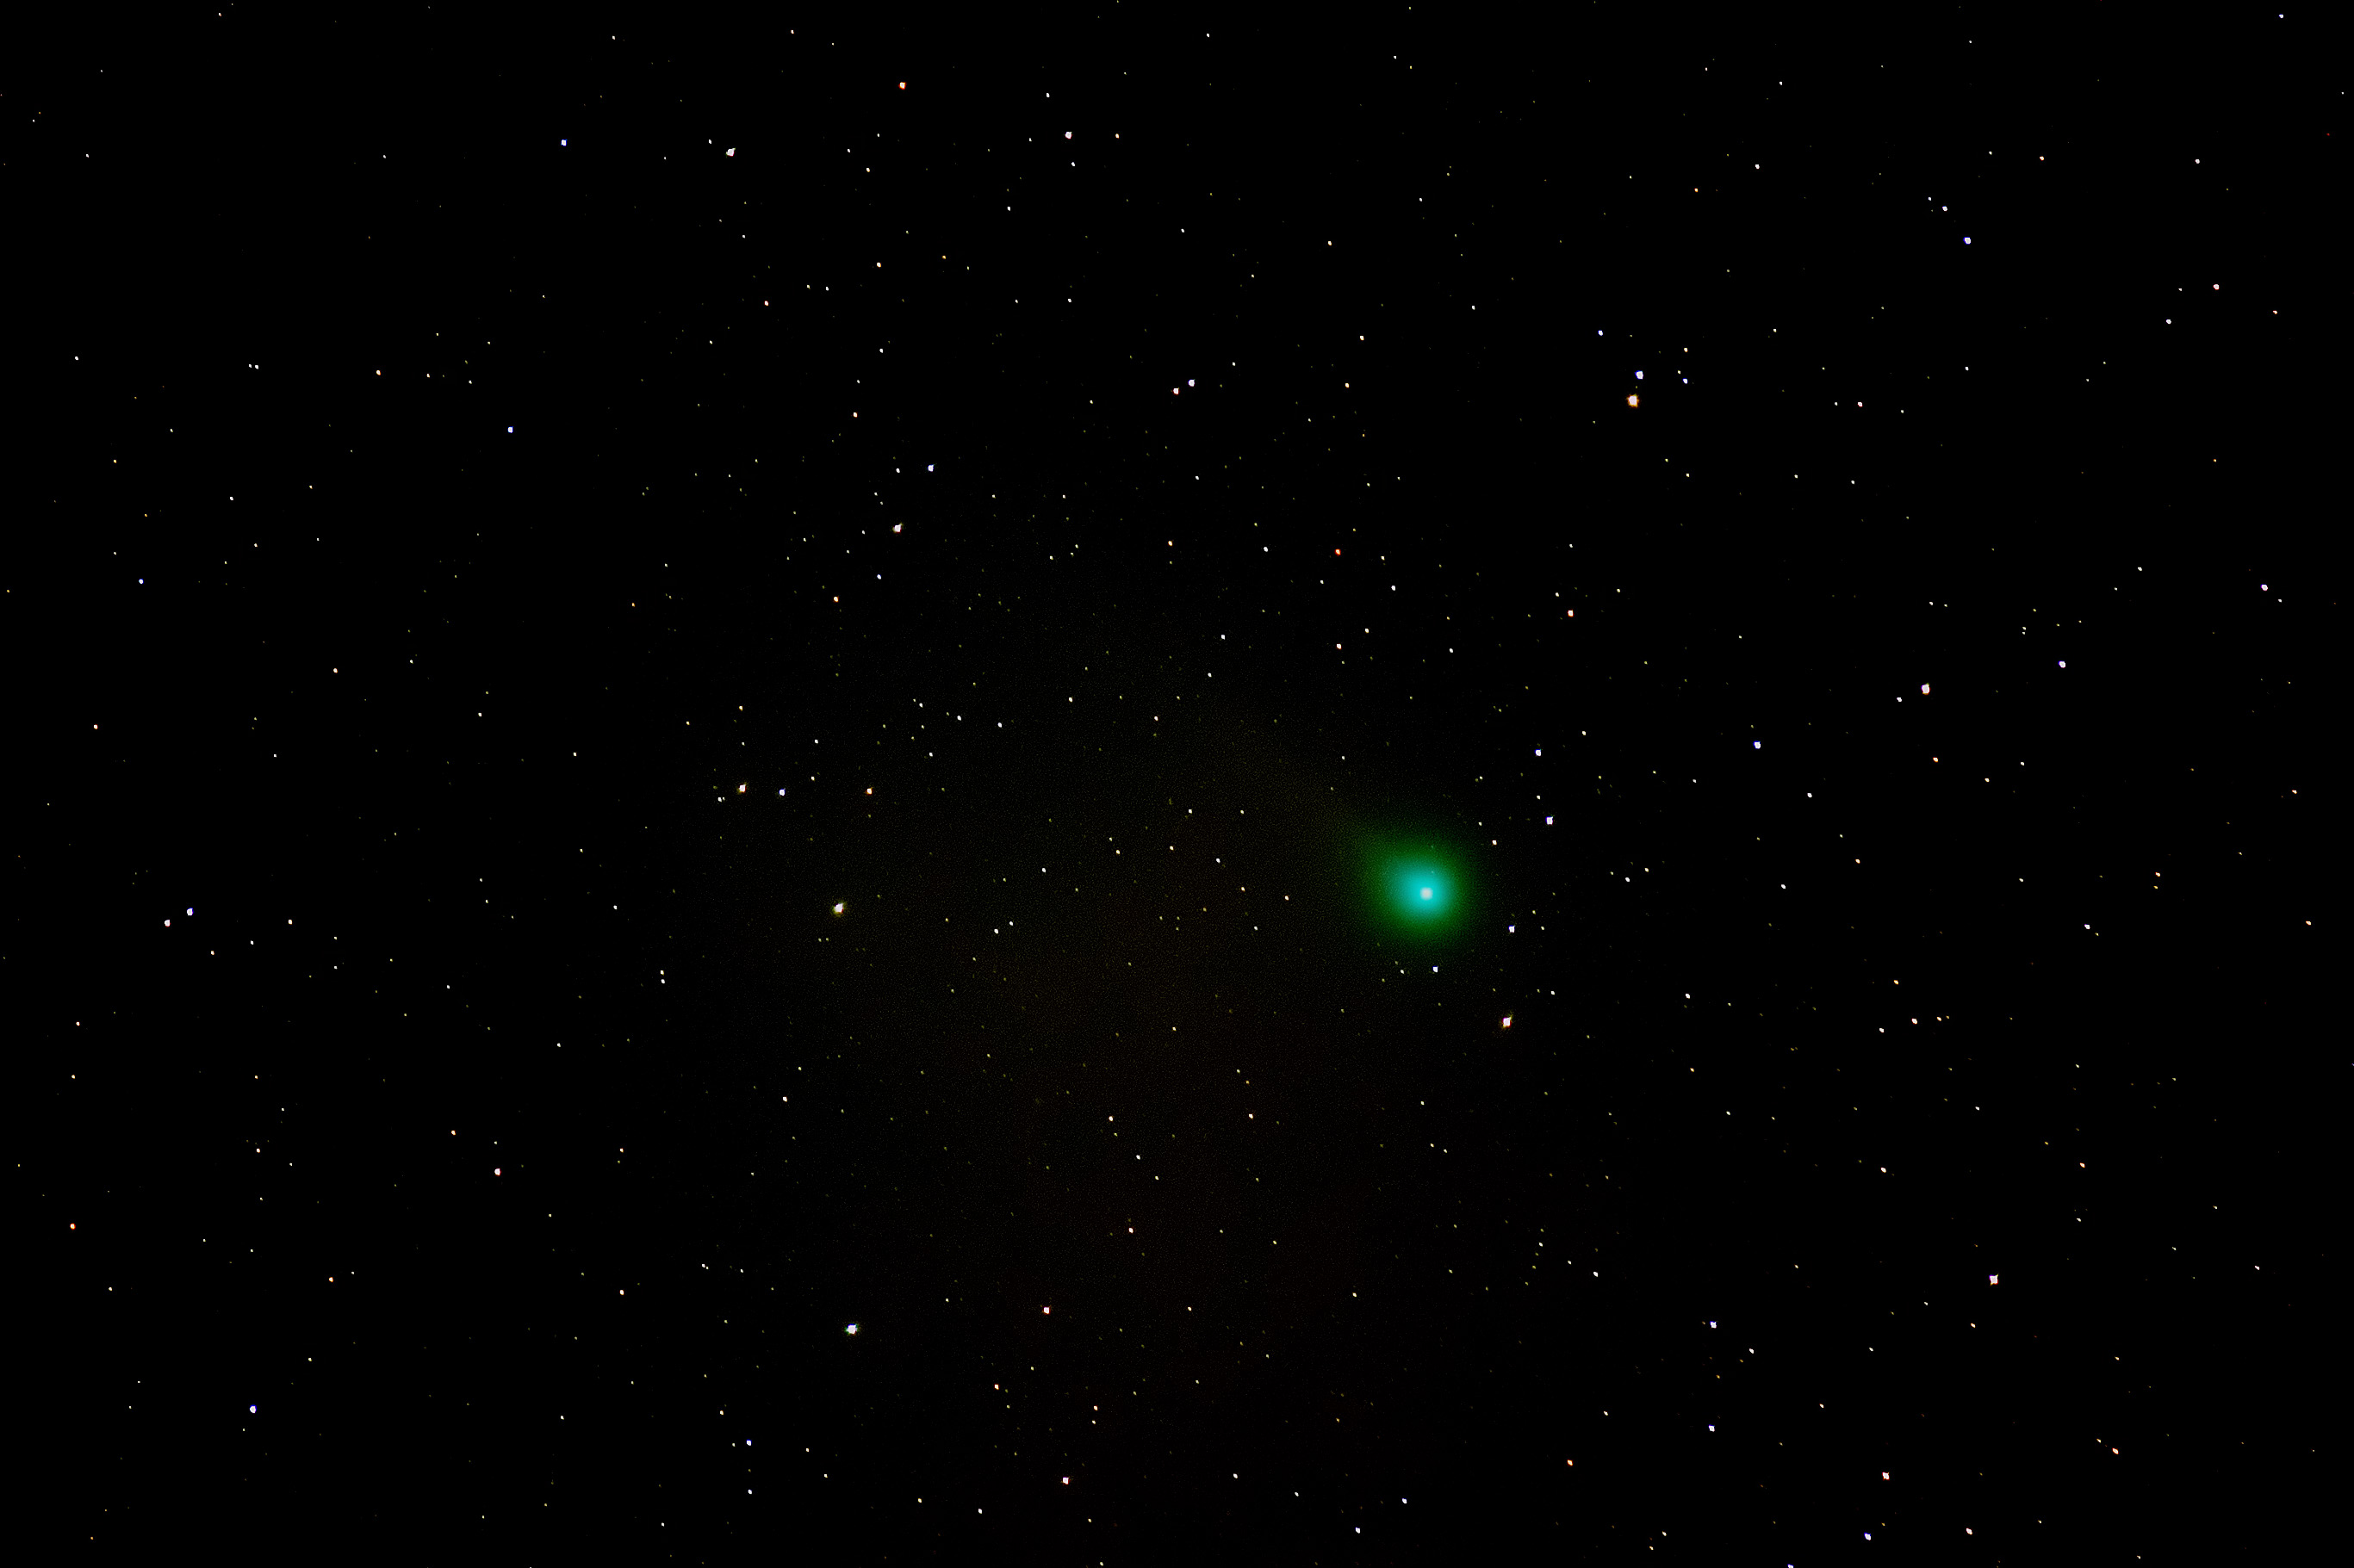 Comet C/2014 Q2 Lovejoy from Blackheath by Mike Meynell